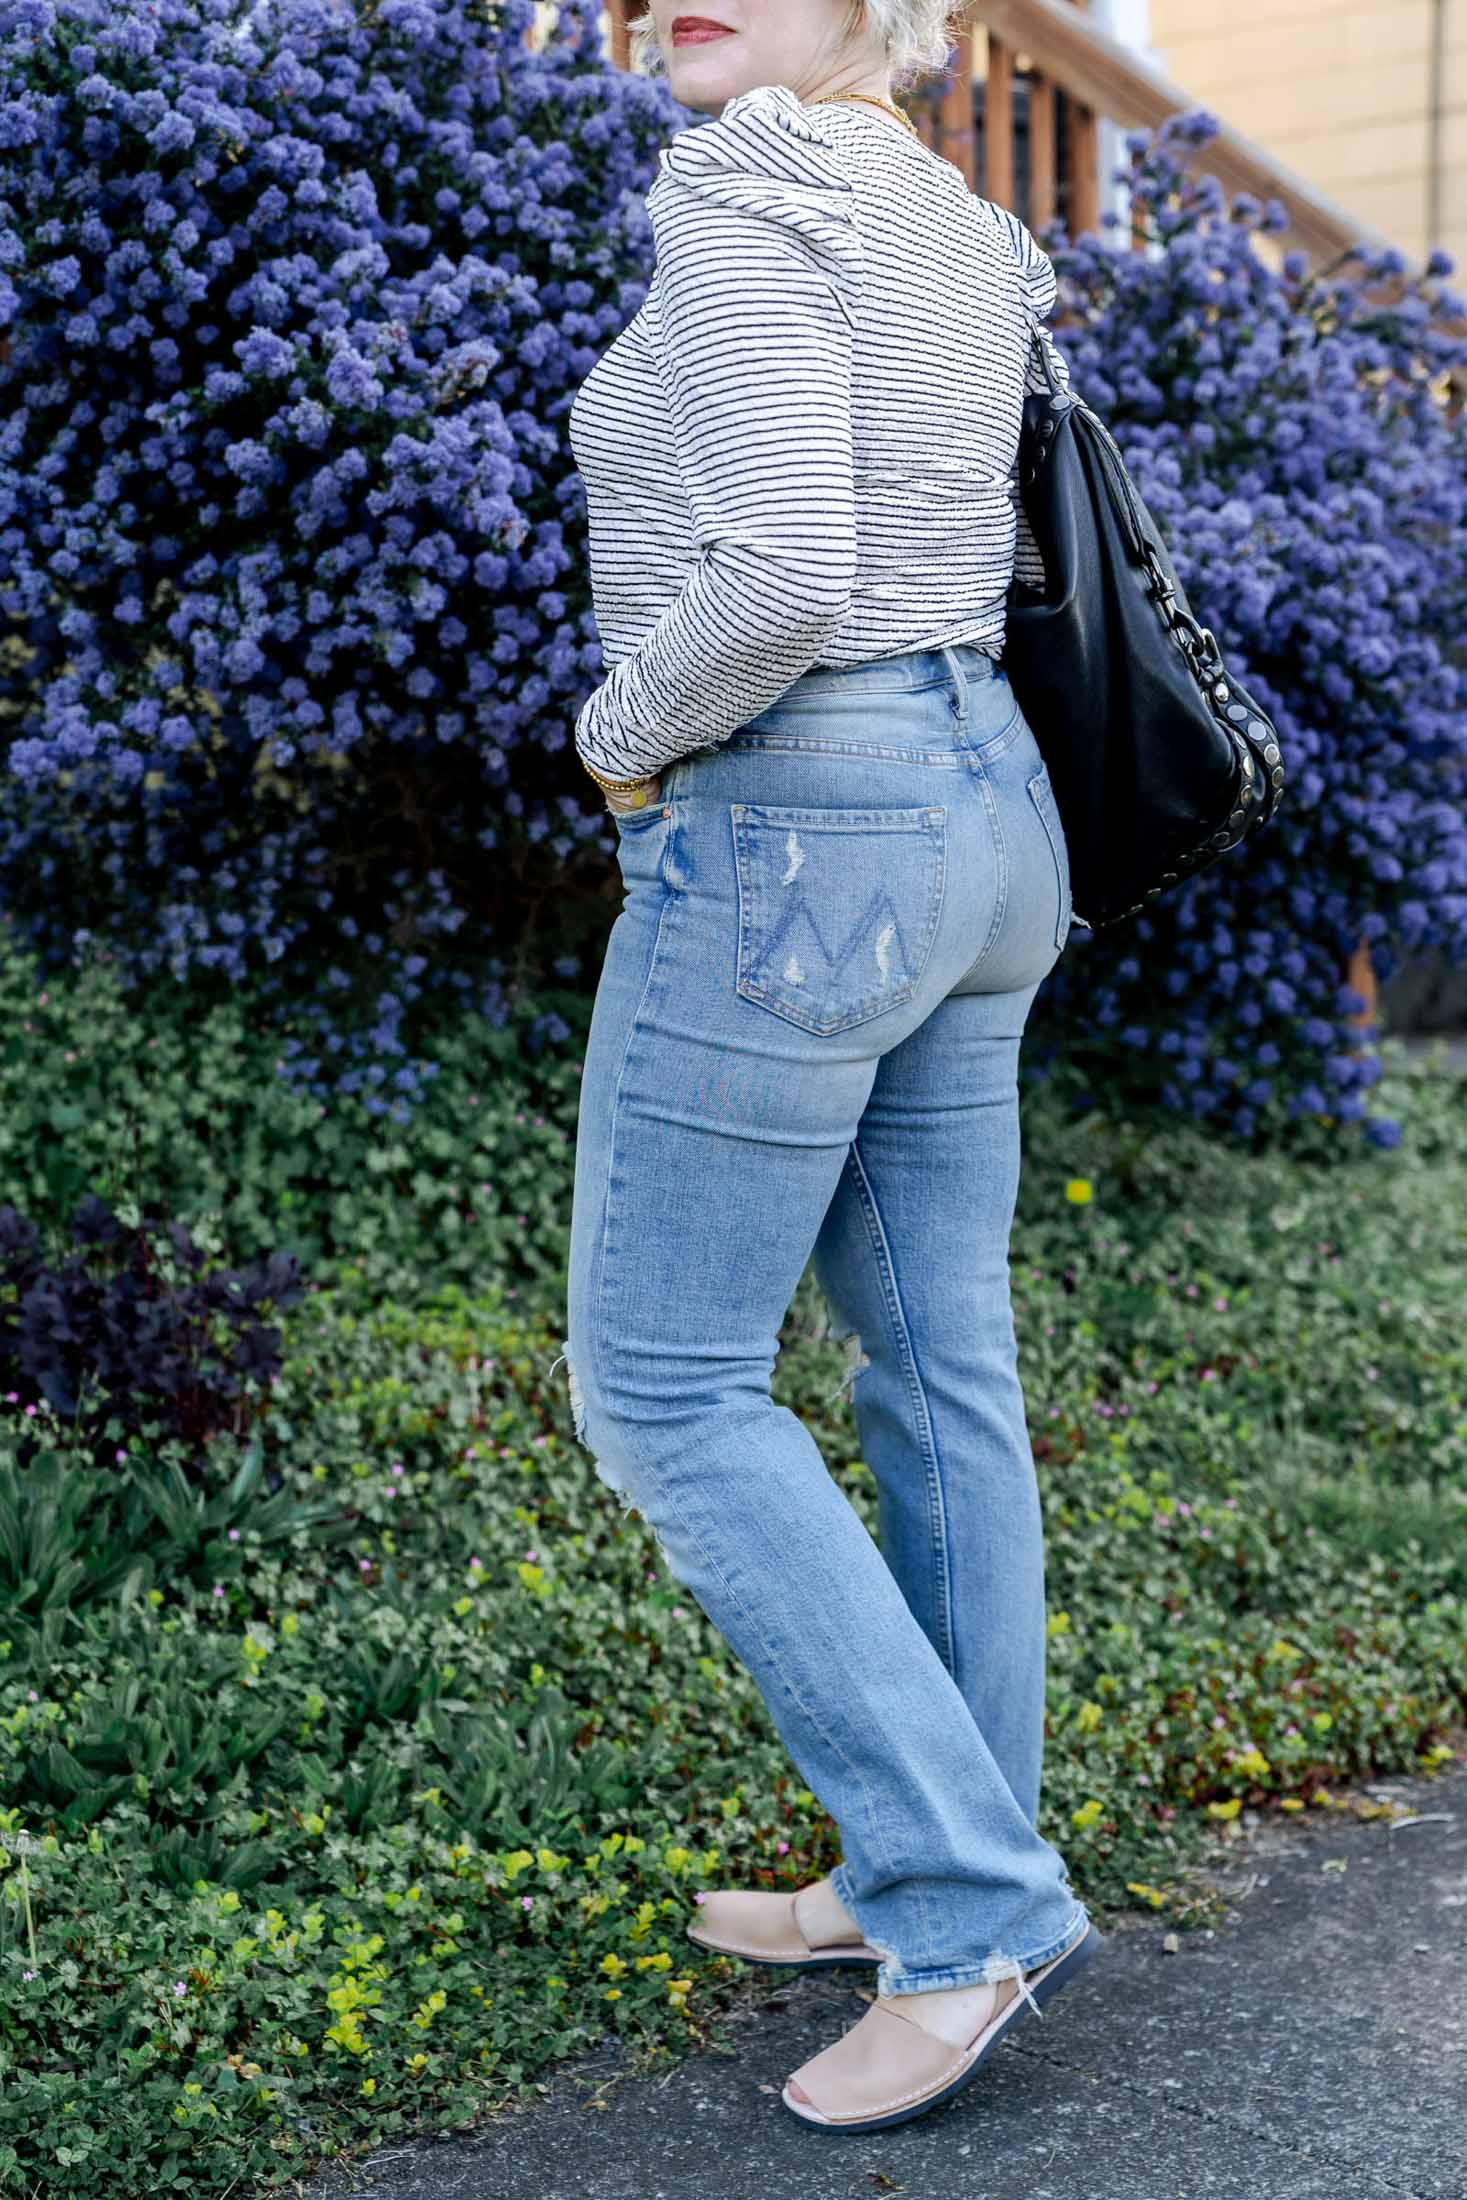 Full-length, straight leg jeans are my new crush. These MOTHER The High-waisted Rider Skimp jeans are so good…but…do I love them with flat shoes?